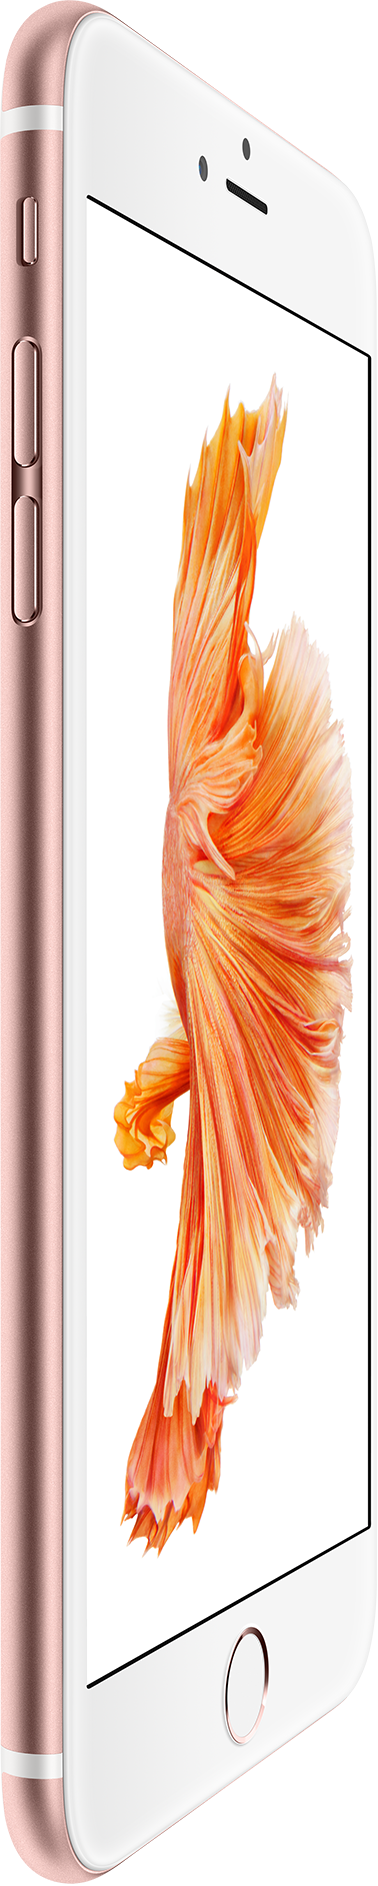 Apple iPhone 6s | iPhone 6s Plus